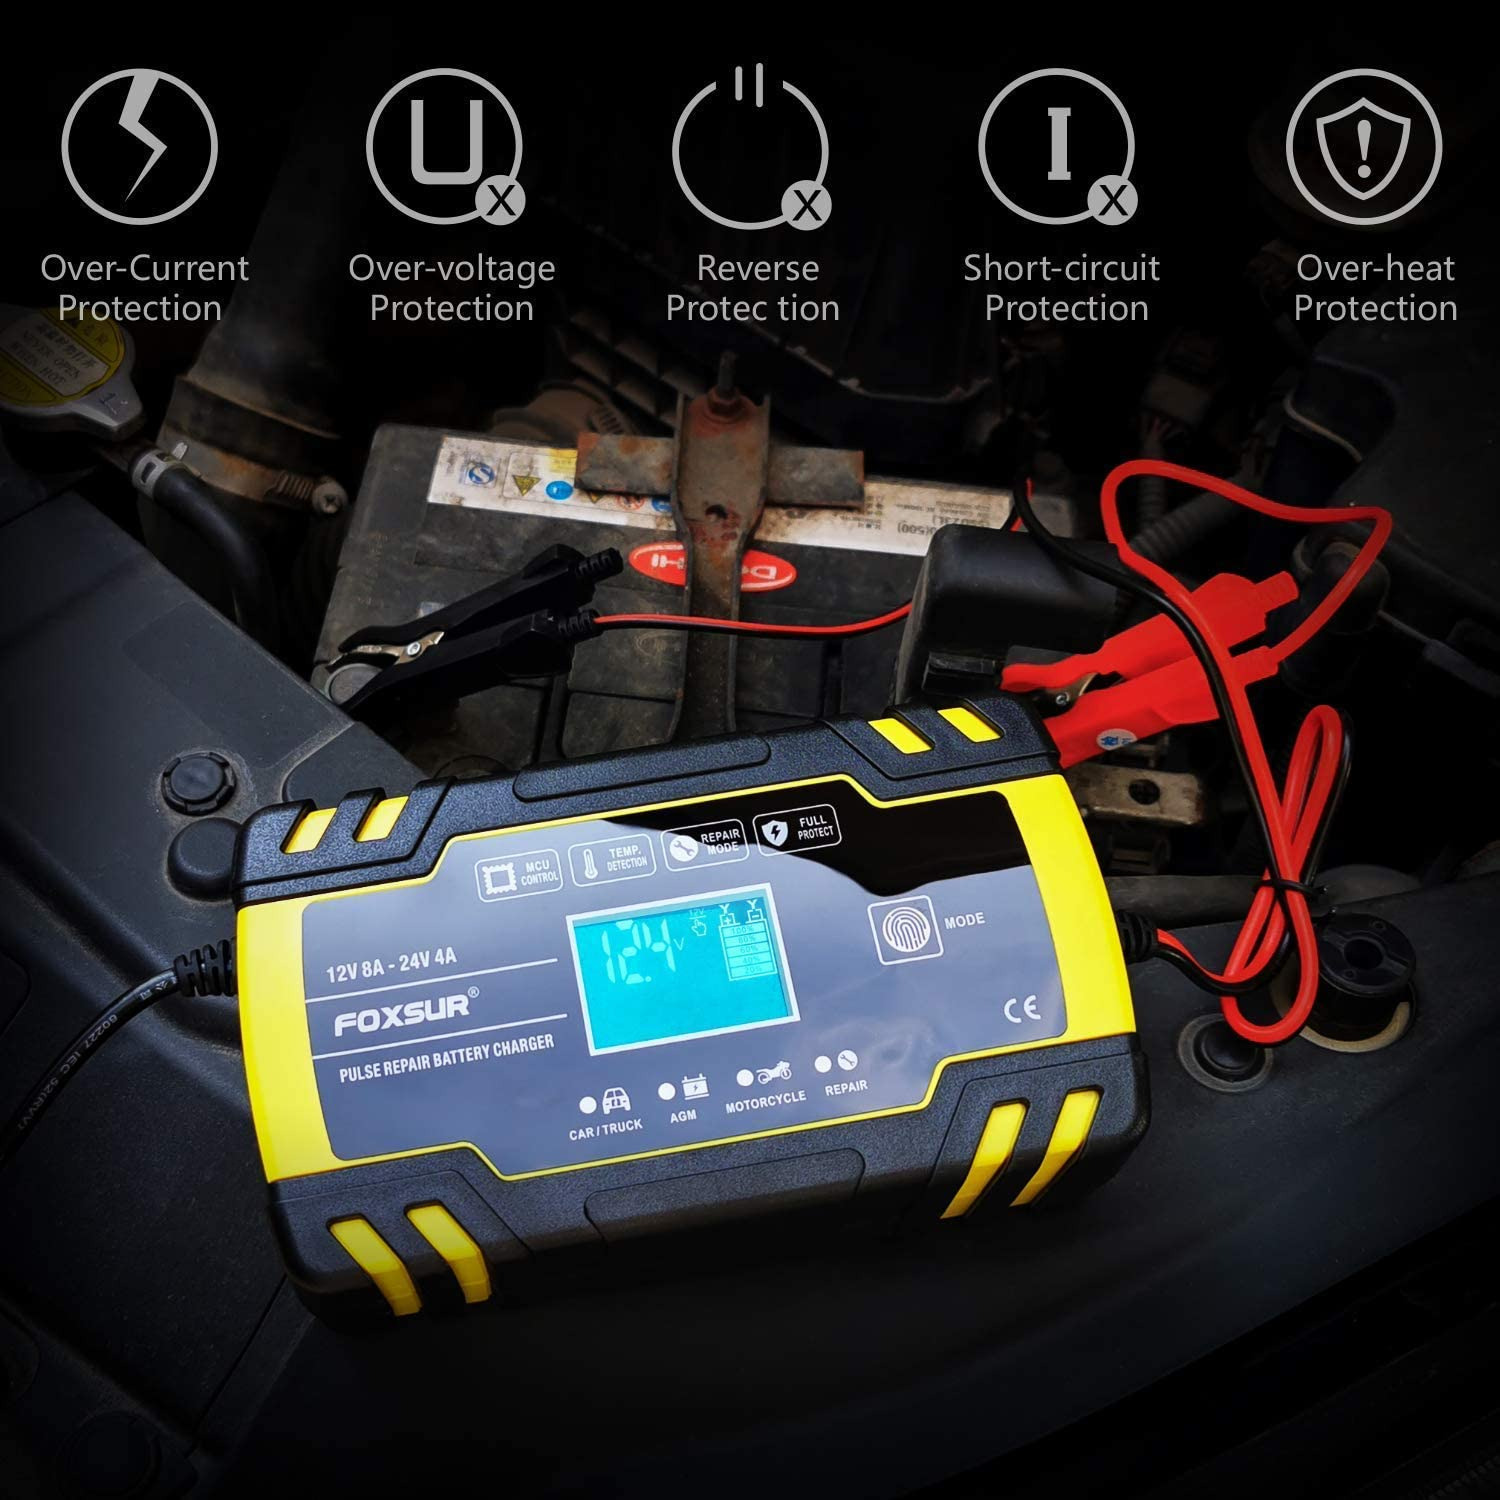 MRCARTOOL Car Battery Charger 12V//24V Fast Automatic Battery Charger Maintainer 3 Stage Fully Intelligent Charging with LCD Screen for Cars Motorcycles Boat